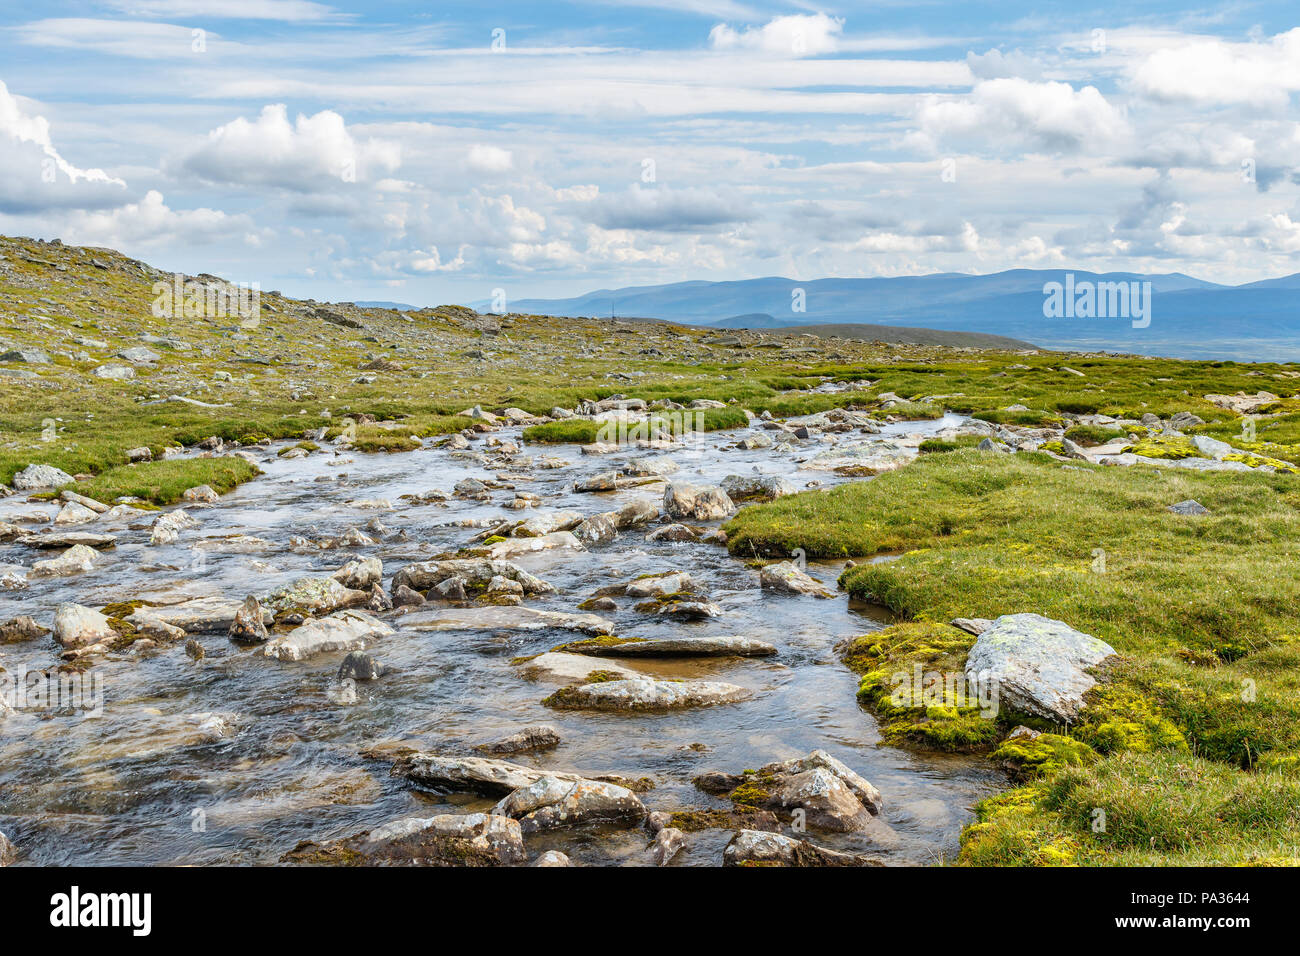 River on a high country landscape - Stock Image